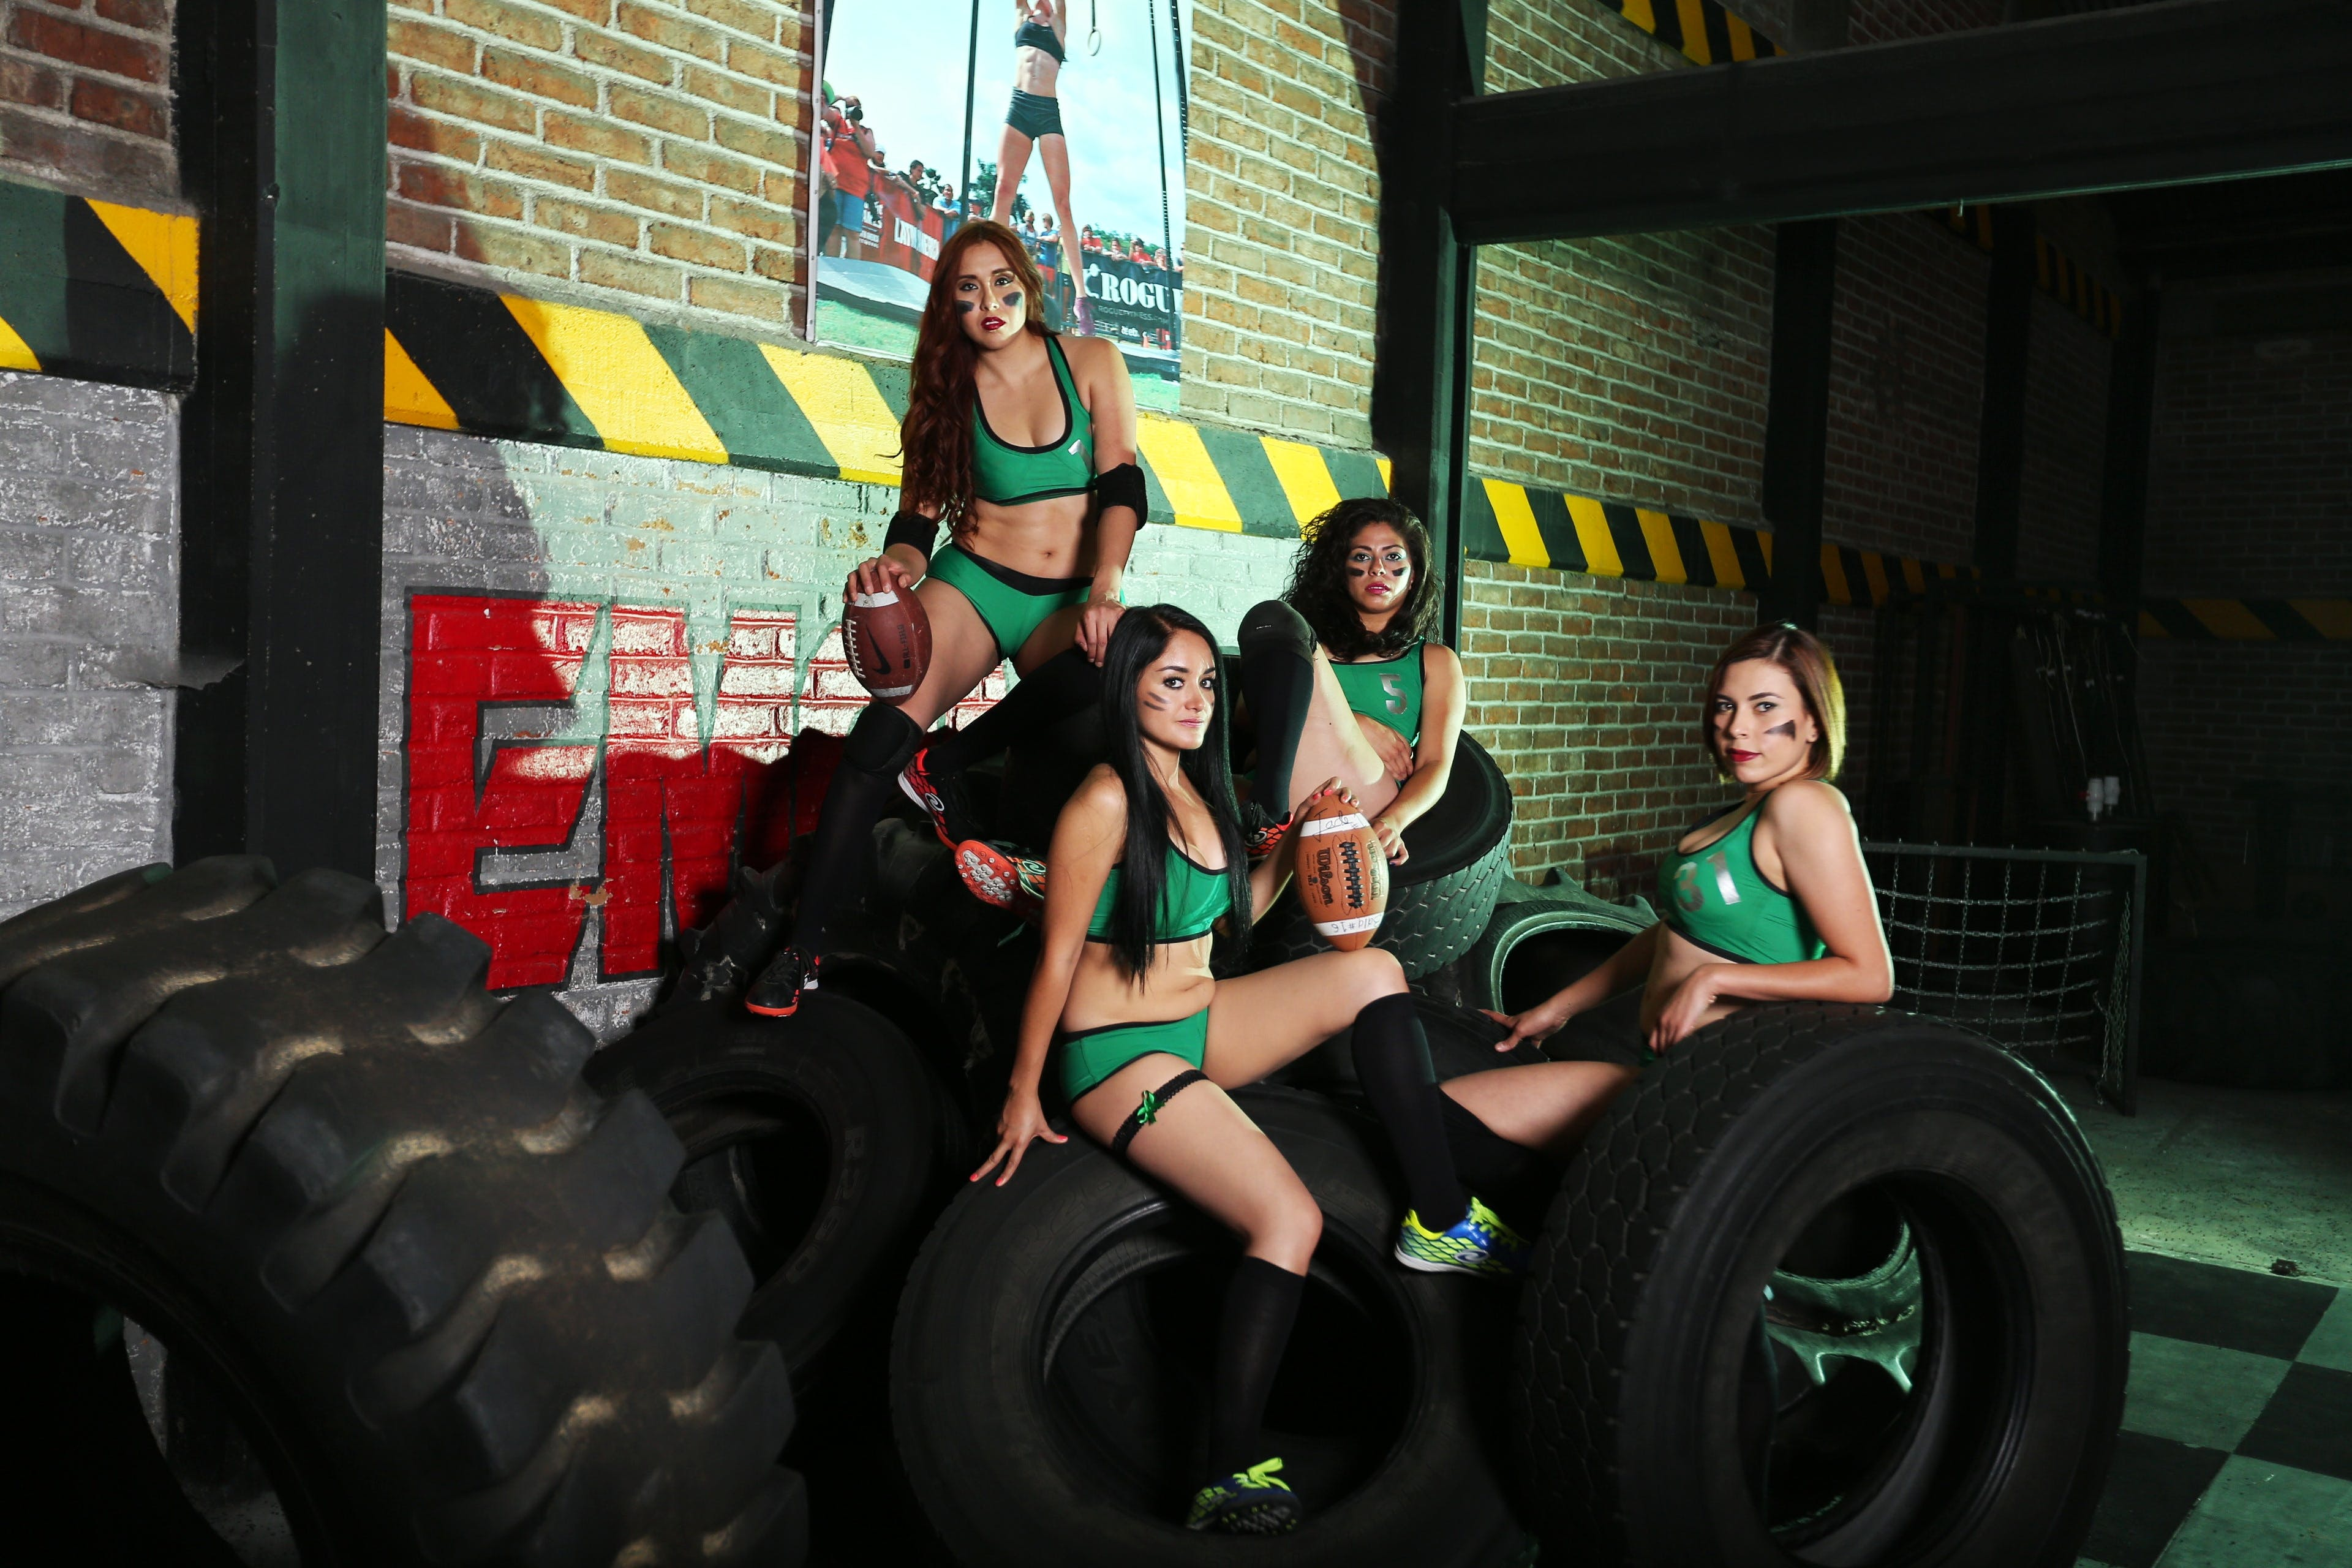 Four Women on Green Sport Bra and Shorts Near Tires